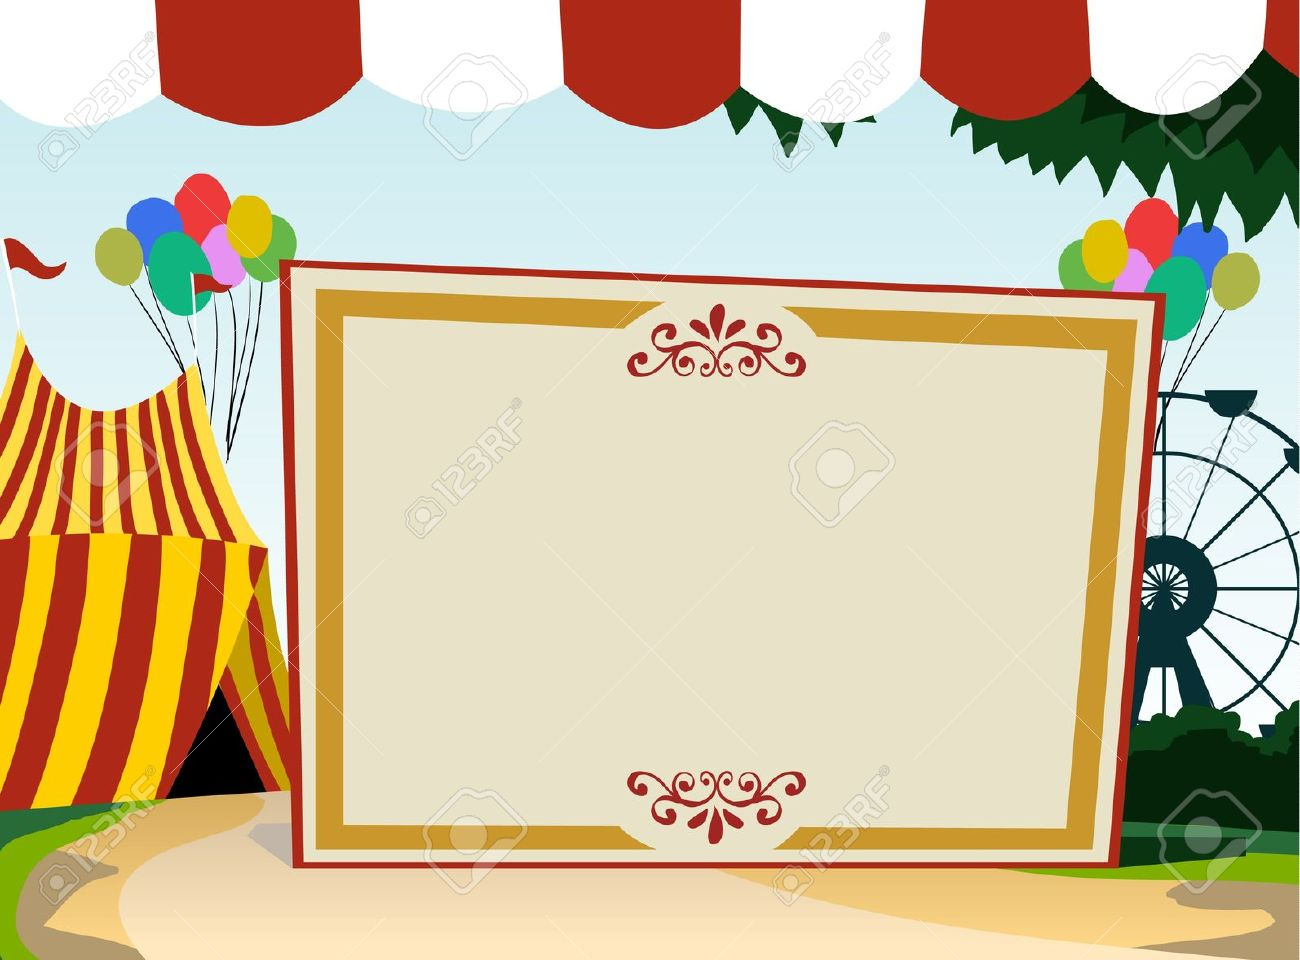 Circus clipart fall. Free theme cliparts download